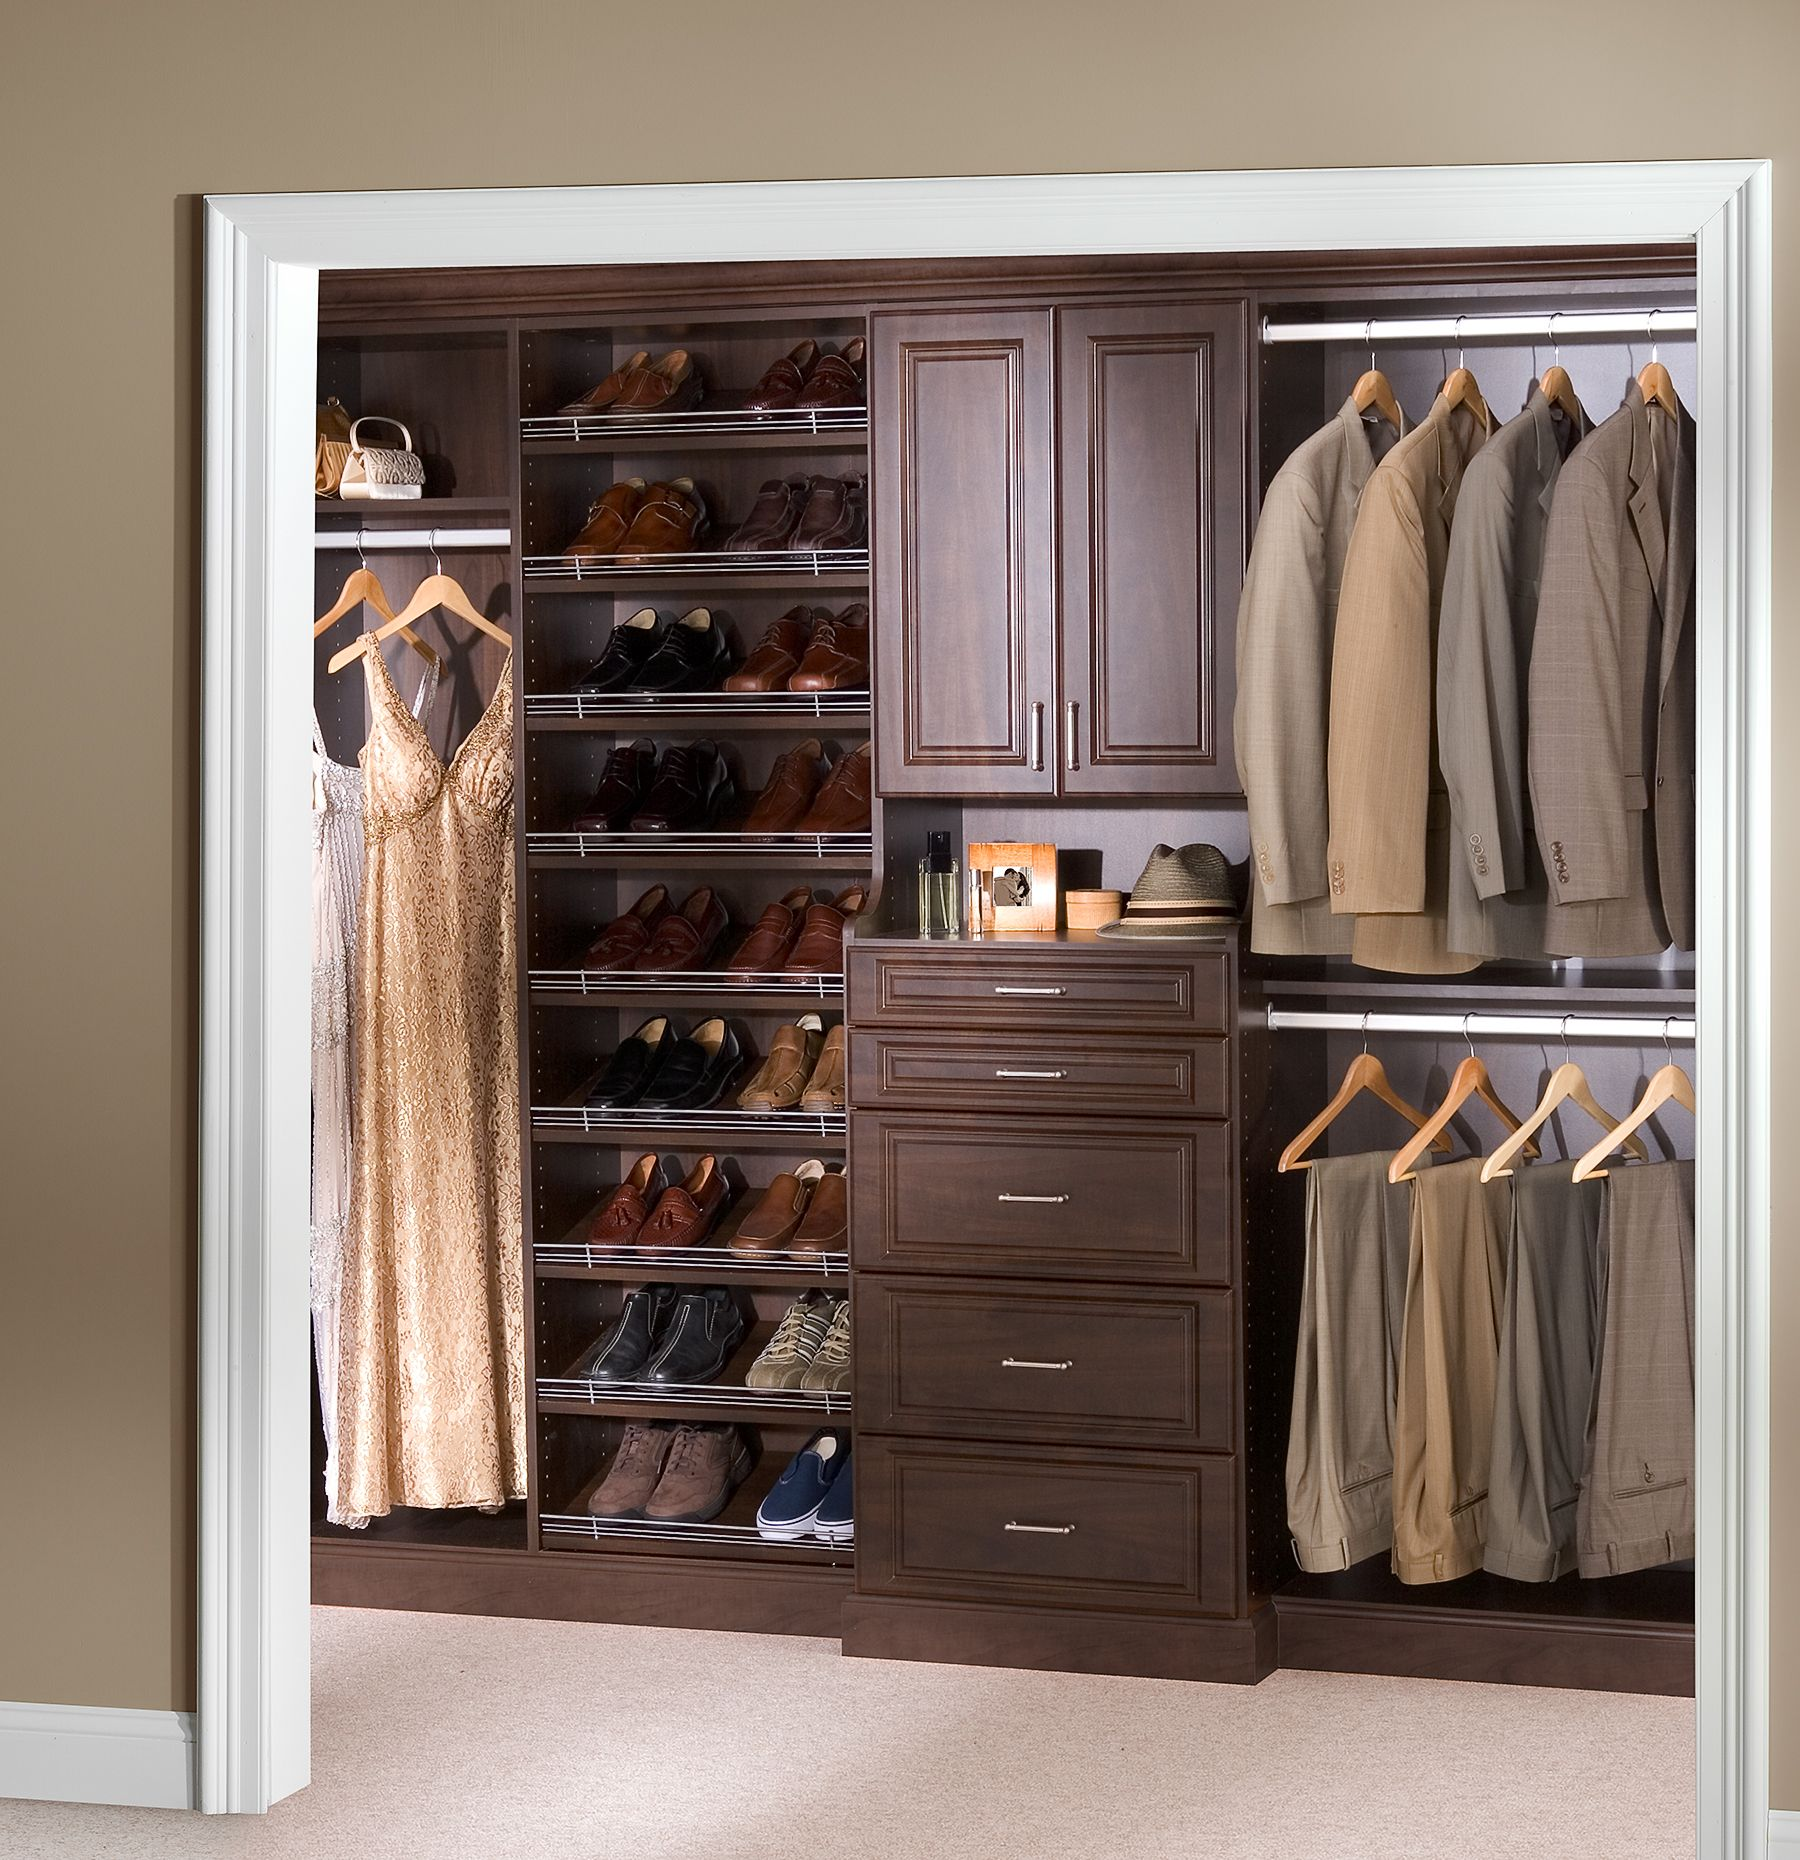 Closet organization systems o r g a n i z e pinterest for Organizing ideas for closets